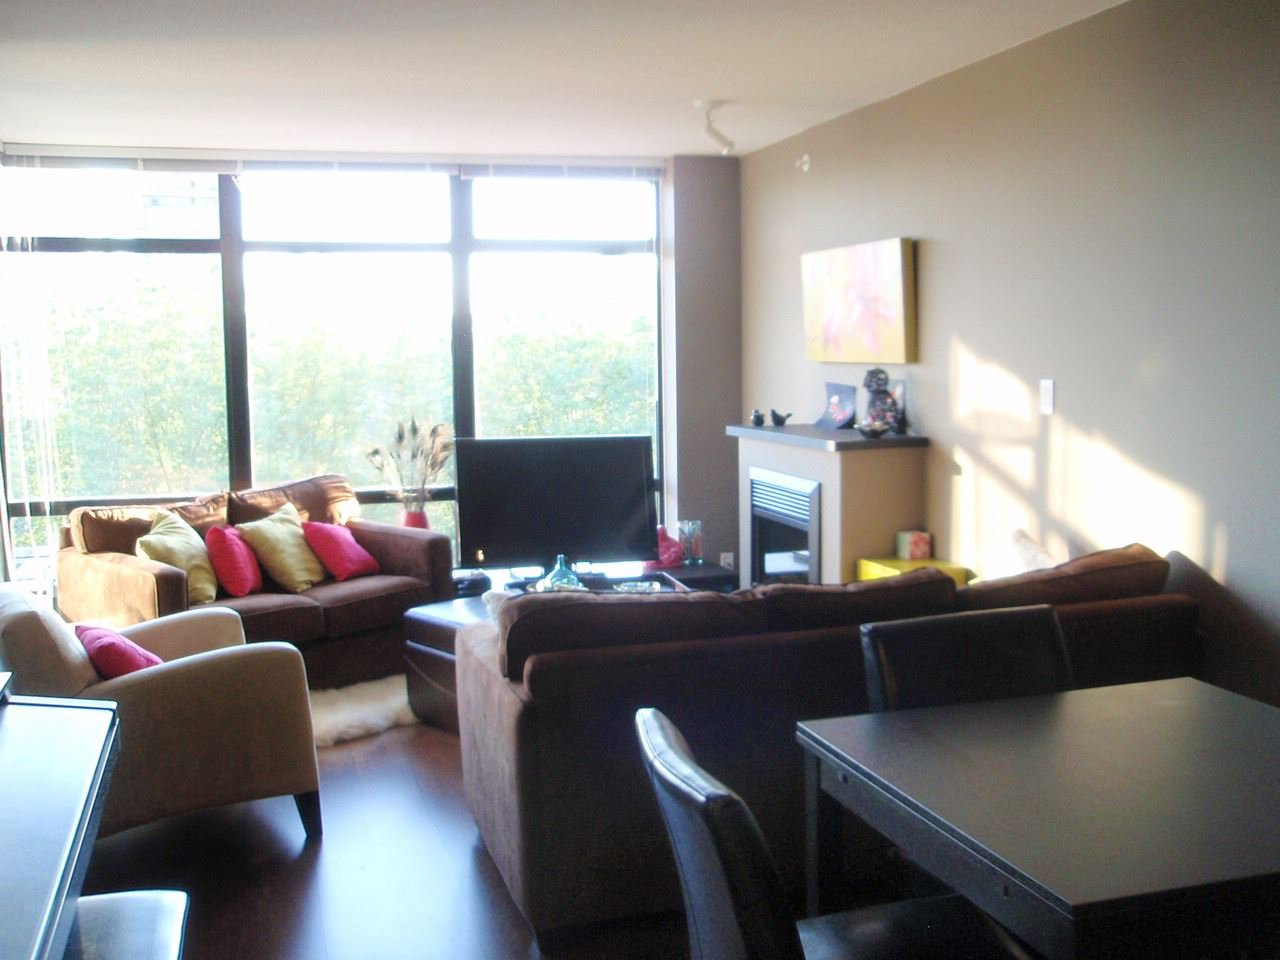 """Photo 2: Photos: 503 610 VICTORIA Street in New Westminster: Downtown NW Condo for sale in """"THE POINT"""" : MLS®# R2127407"""